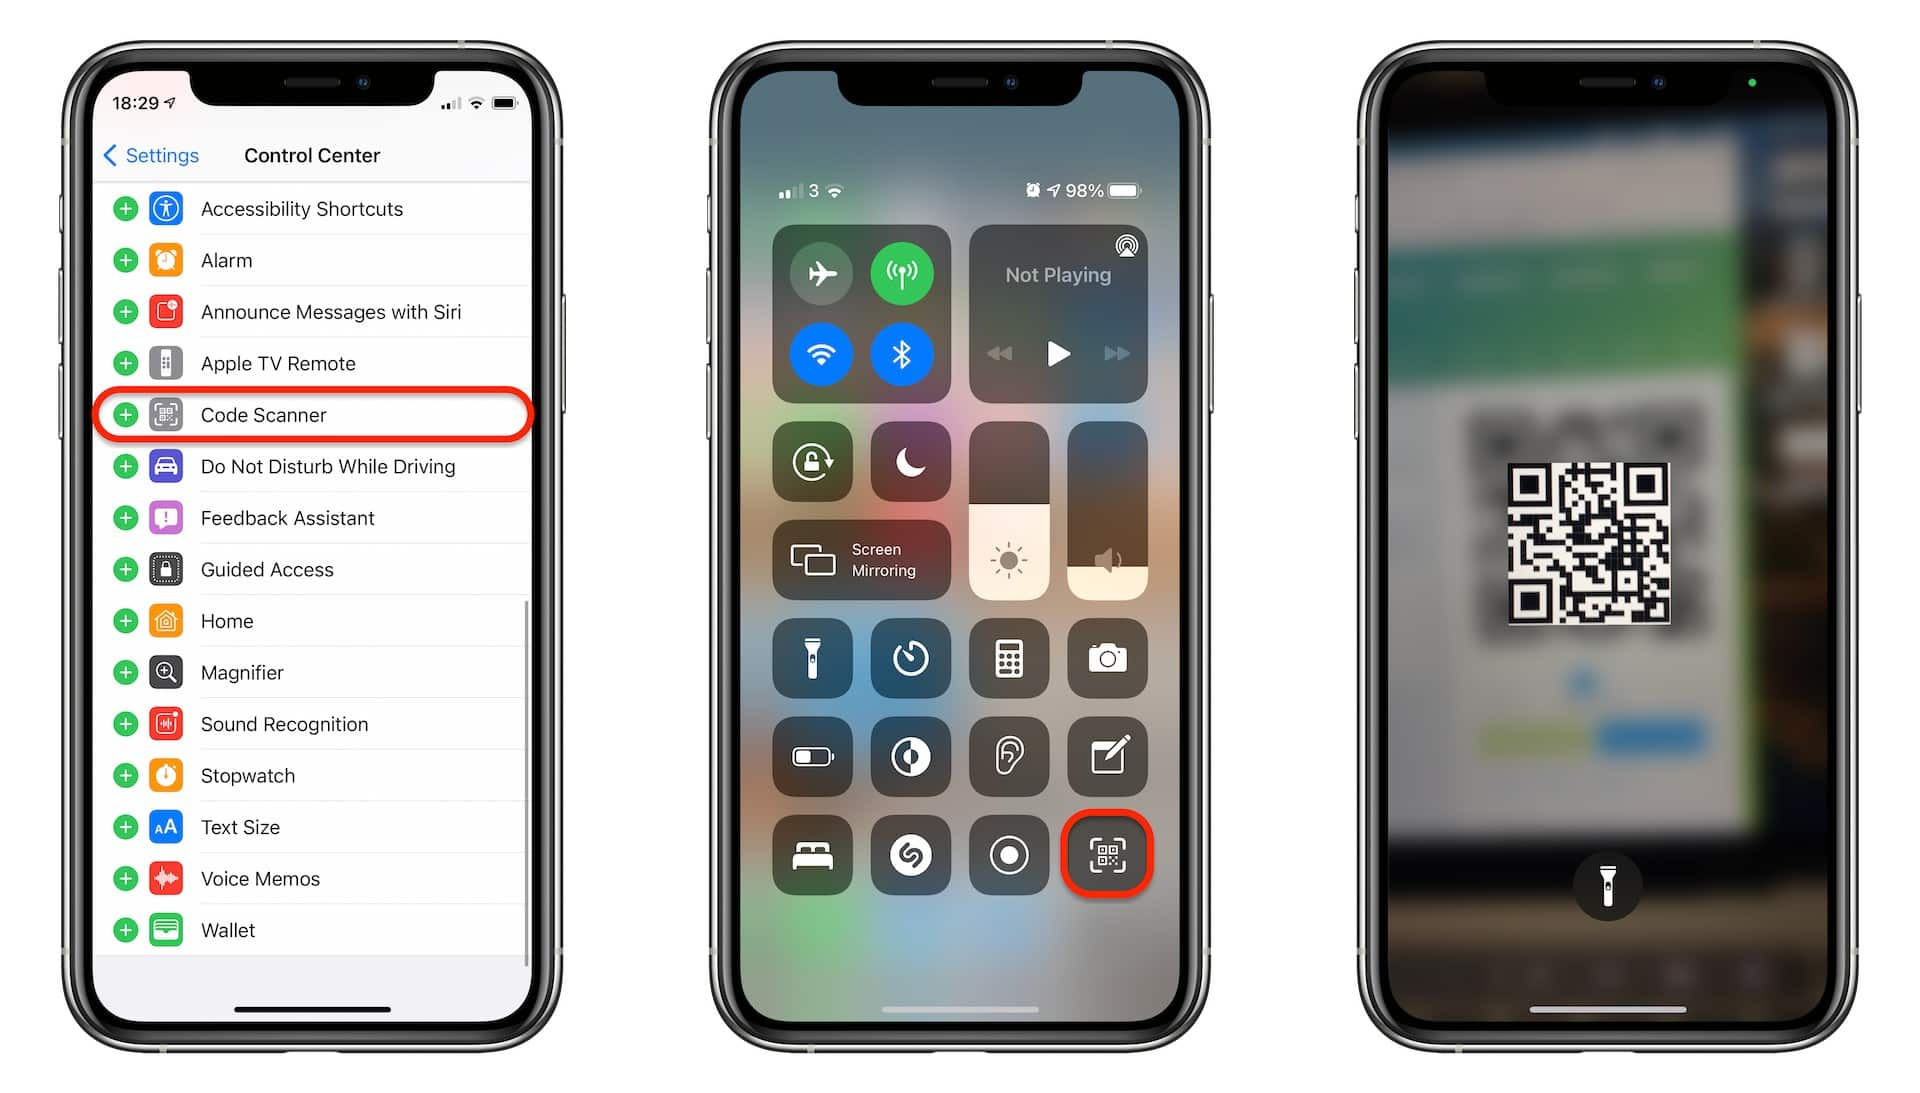 Add a QR code scanner to Control Center